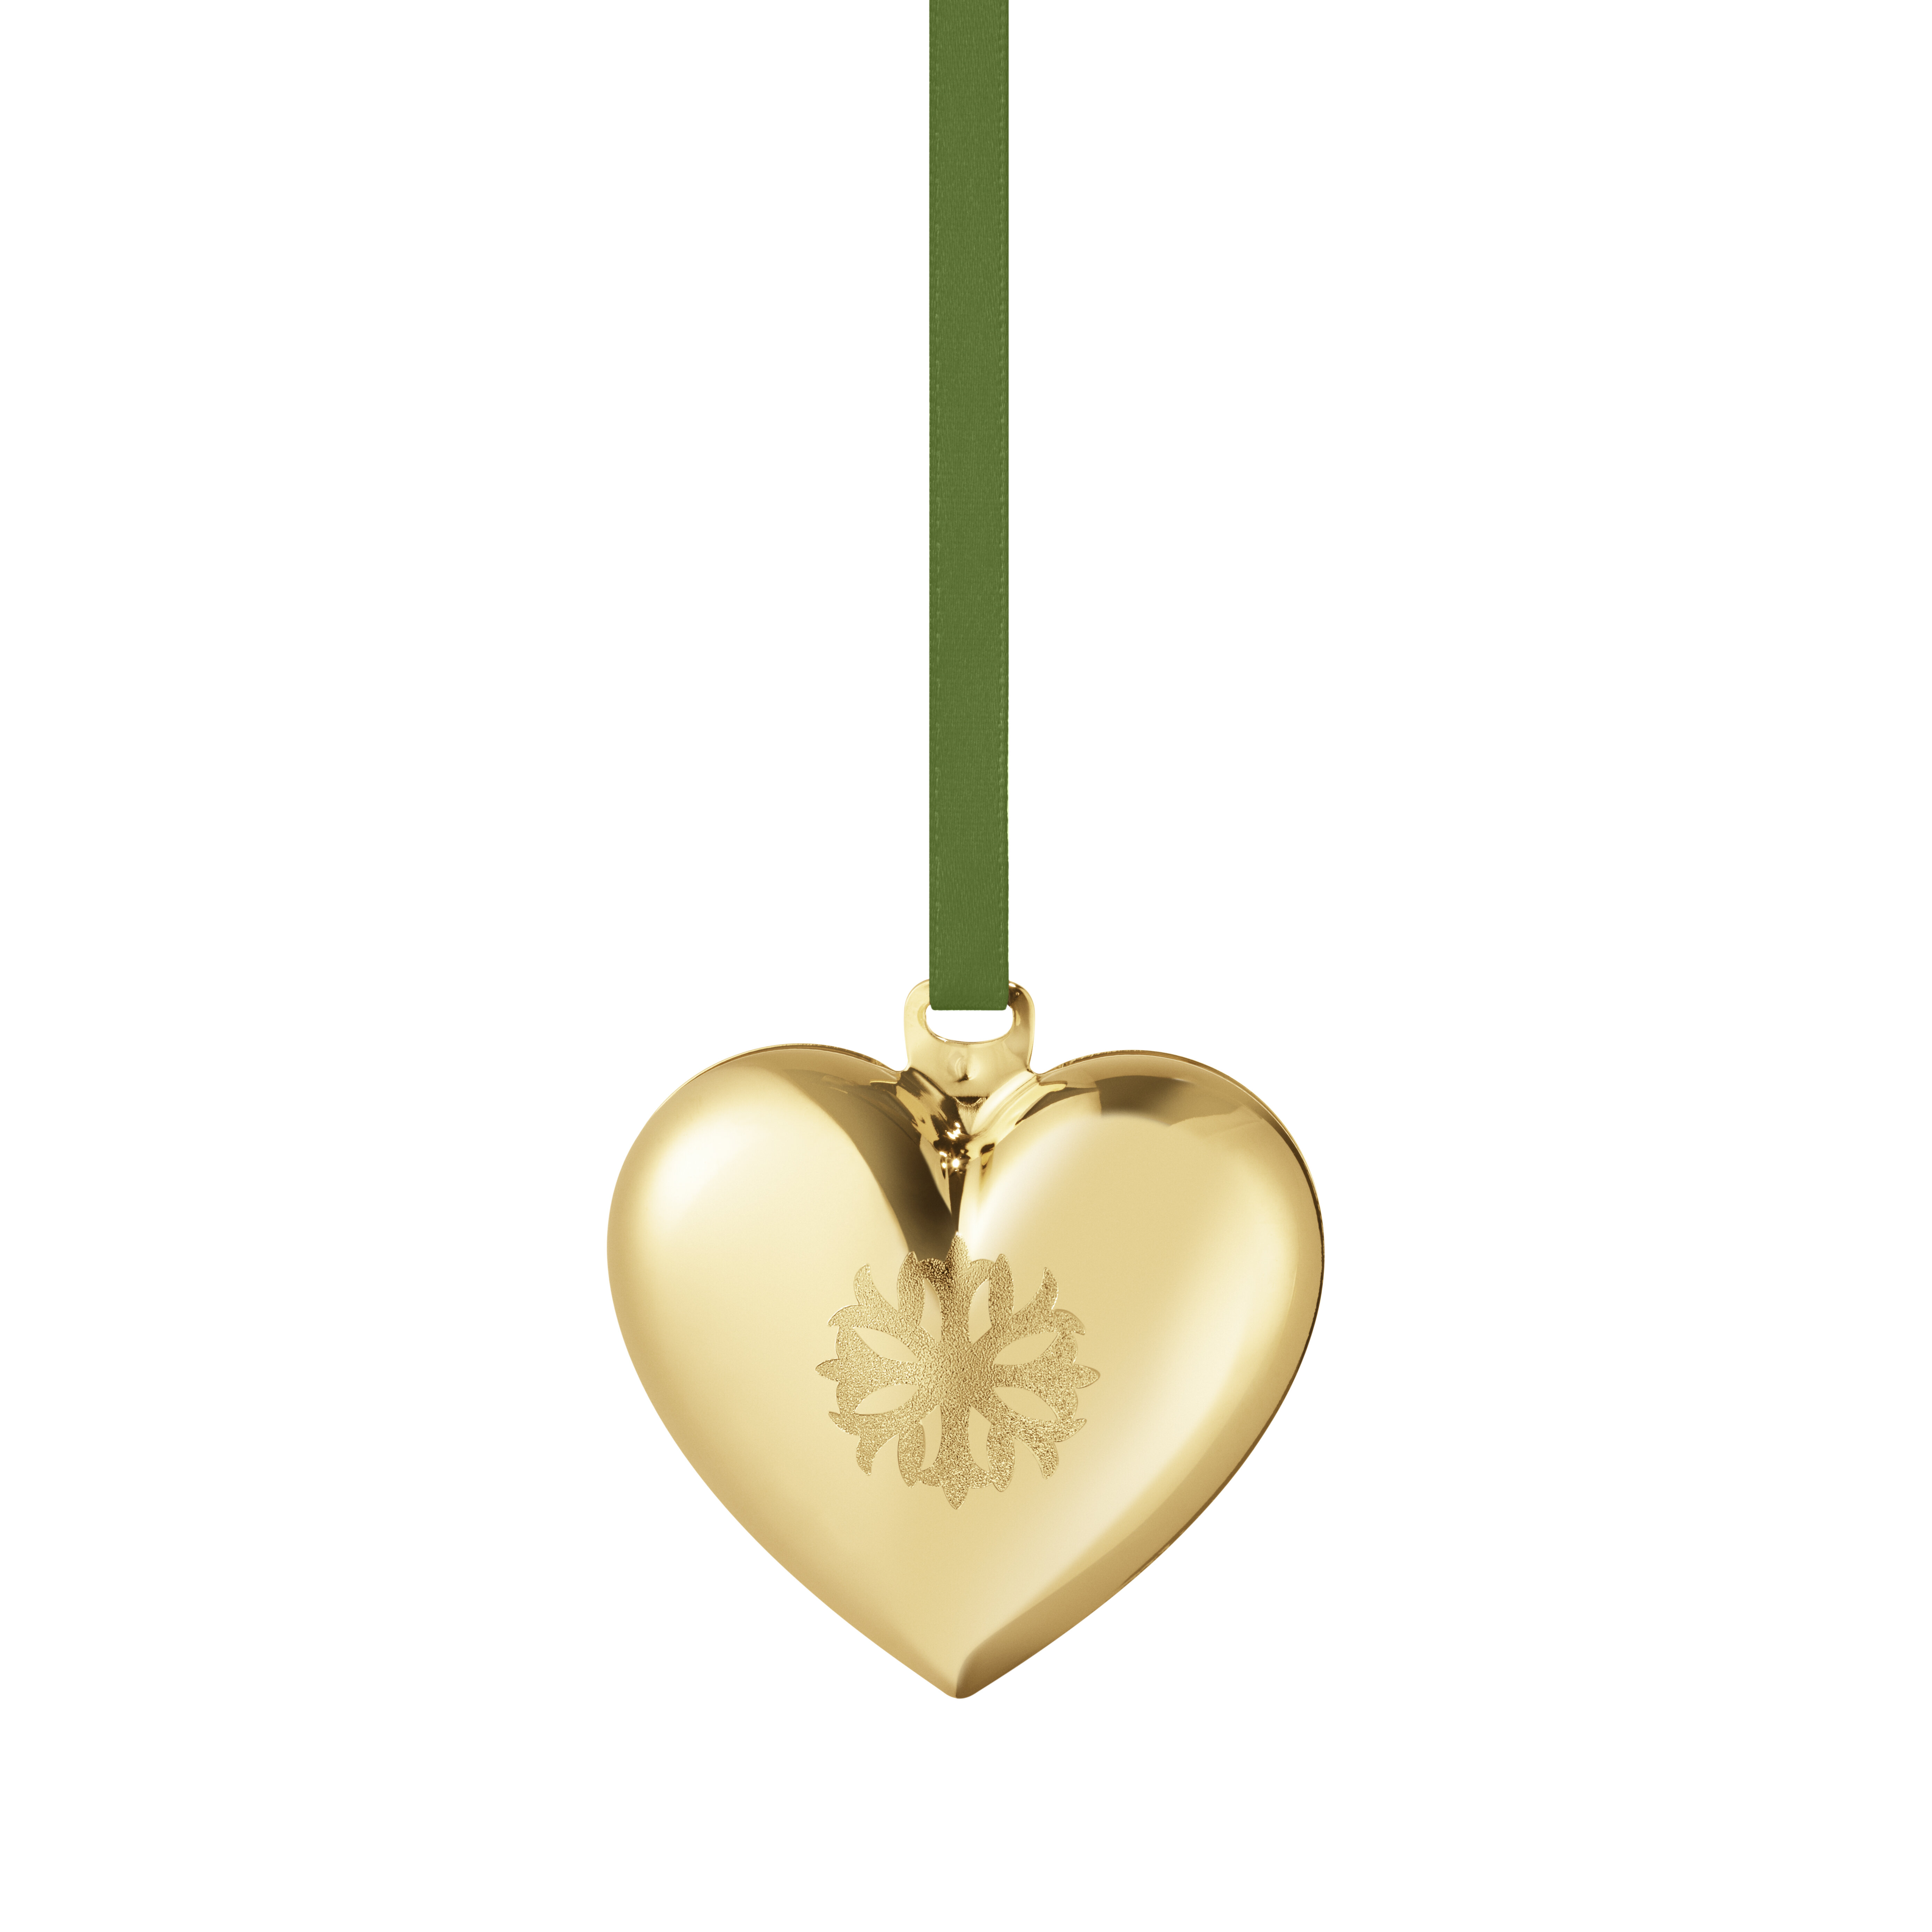 Georg Jensen Christmas Heart Holiday Shaped Ornament Perigold